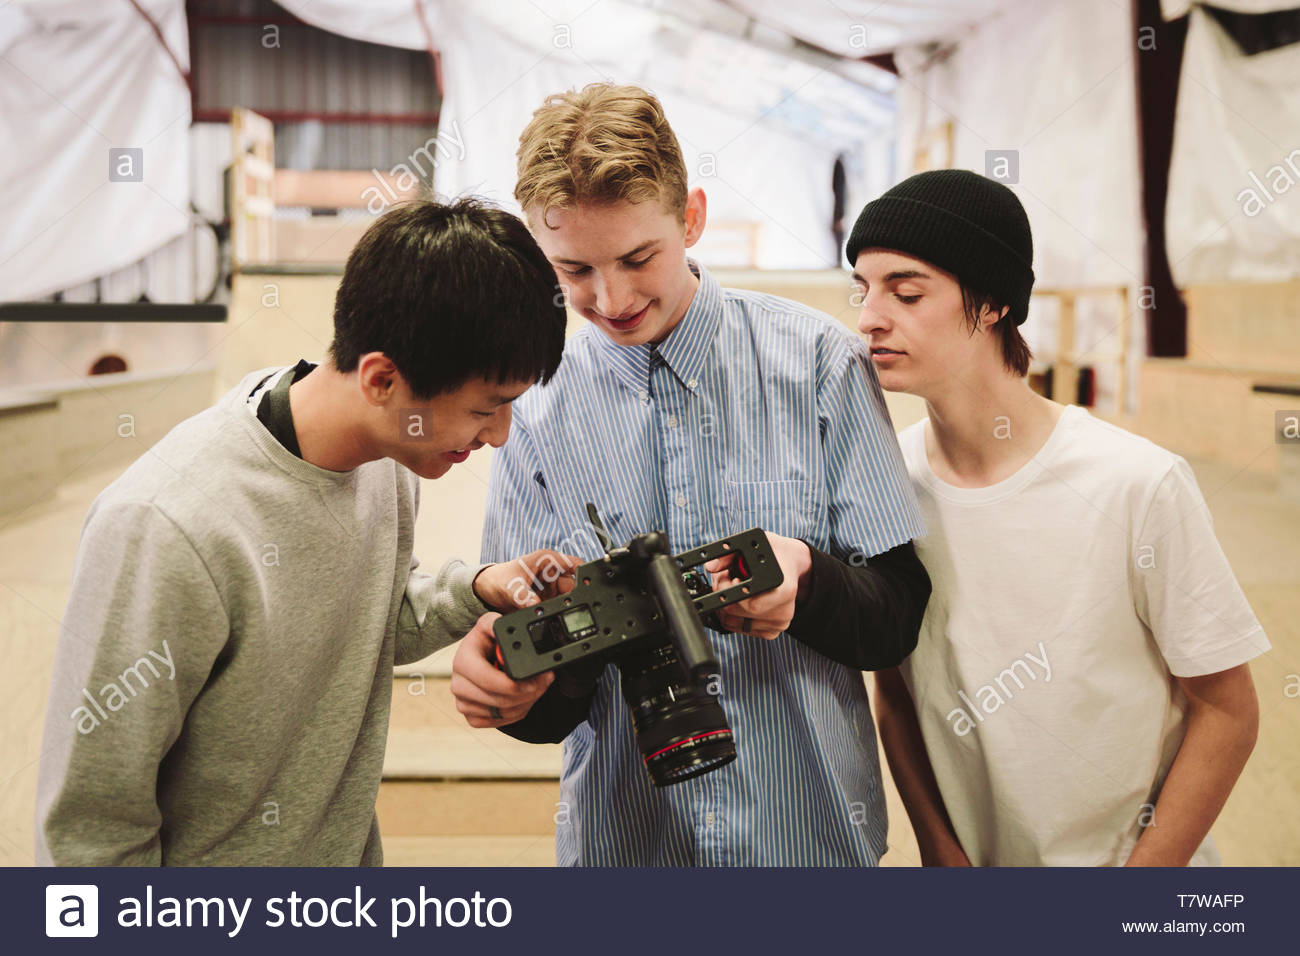 Teenage boys with video camera at indoor skate park - Stock Image